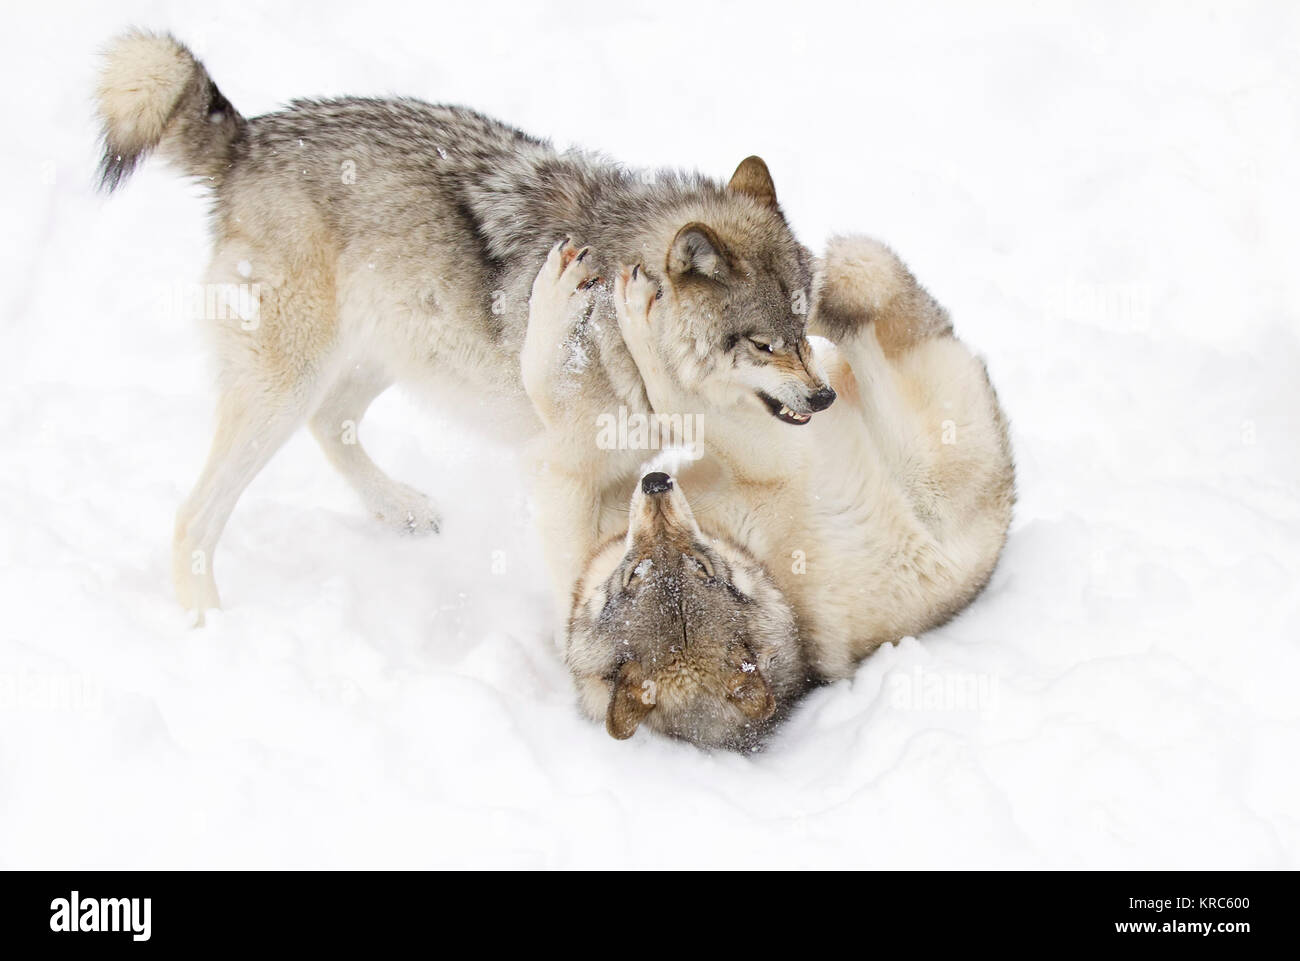 Timber wolves or Grey wolf (Canis lupus) playing in the winter snow in Canada - Stock Image